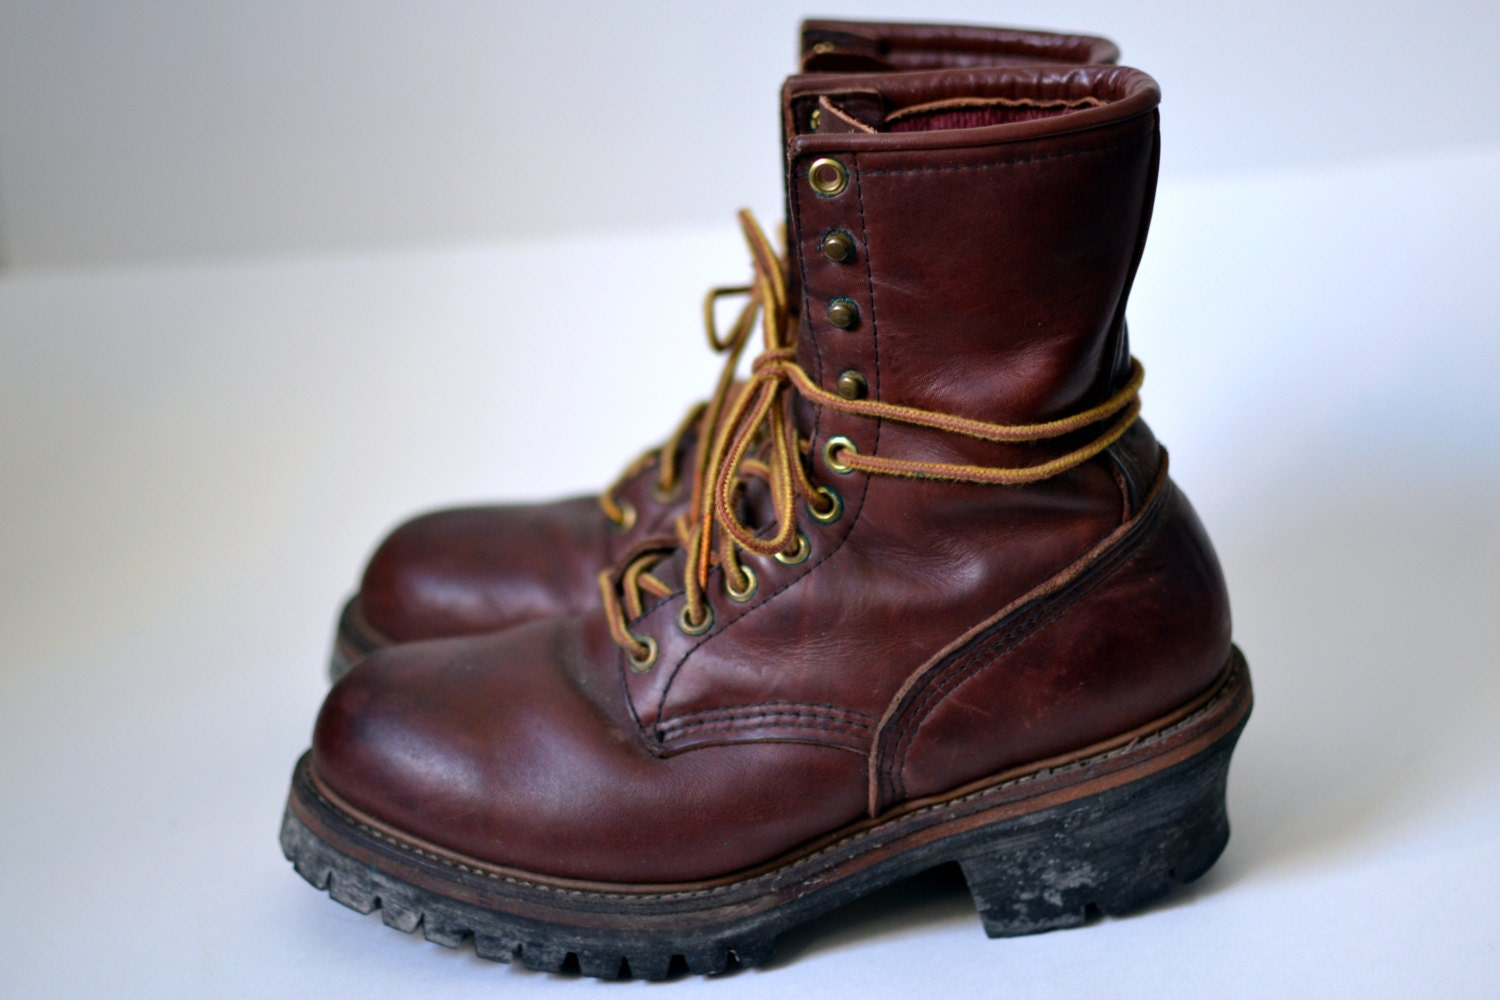 Vintage RED WING Chestnut Reddish Brown Work Boots Steel Toe